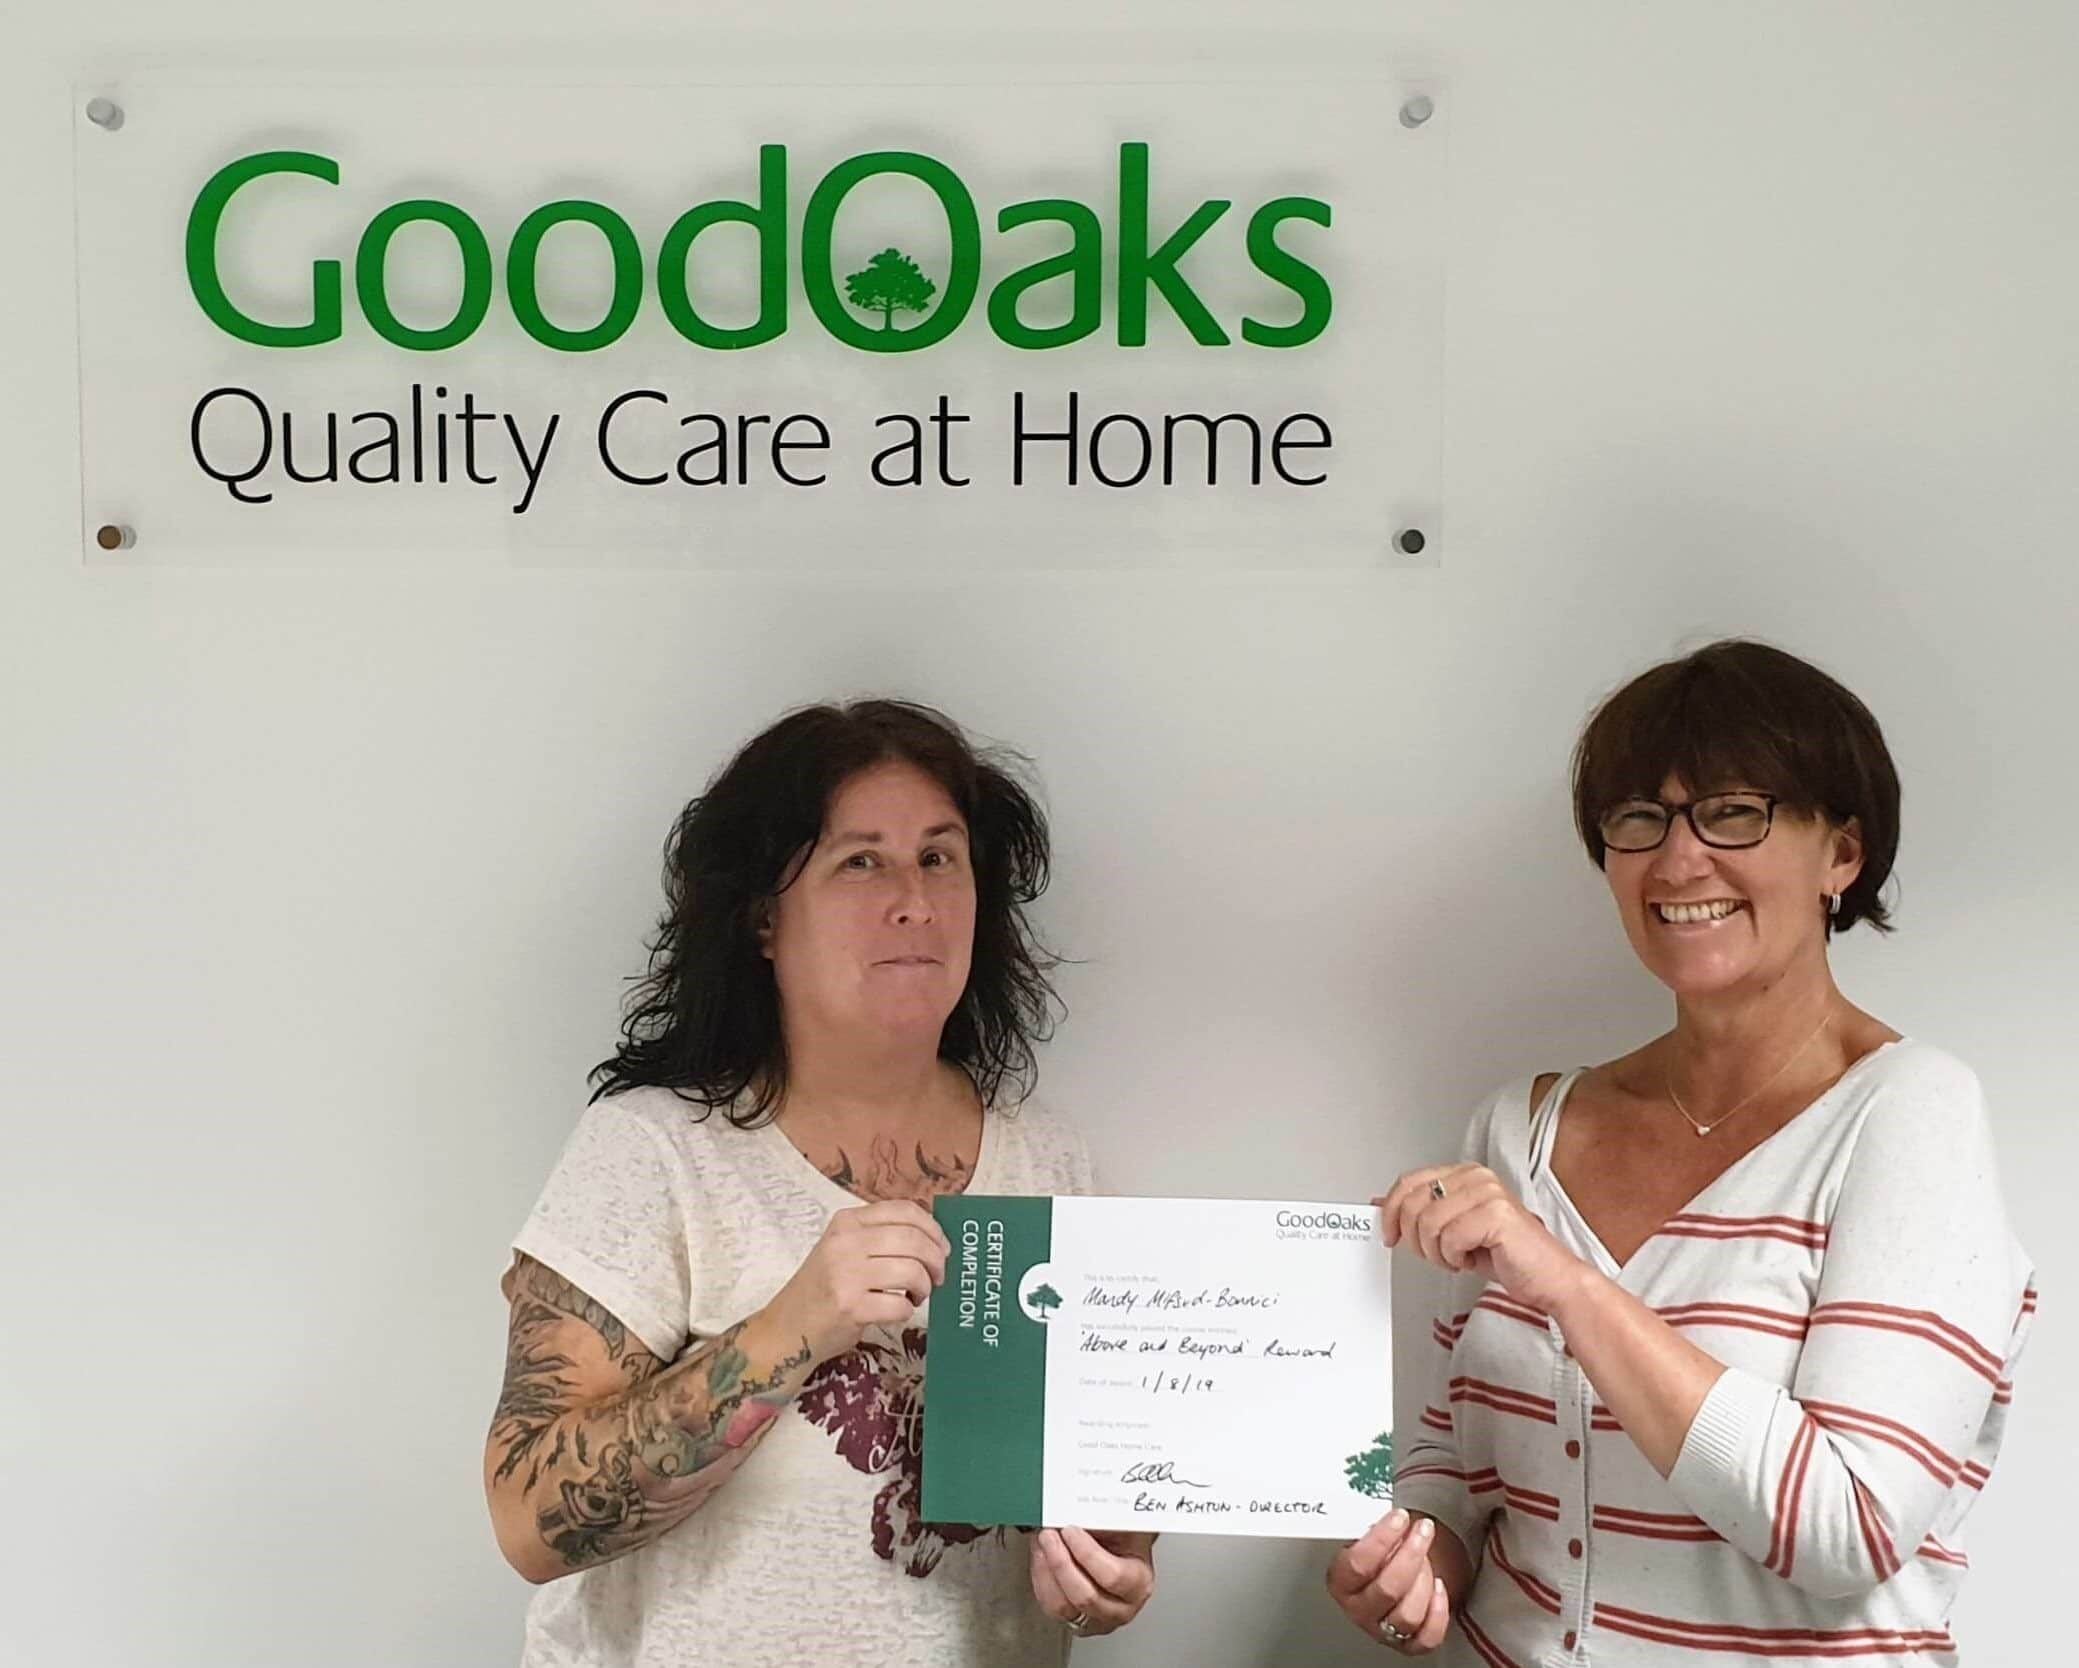 Home Carer with Good Oaks Trainer holding certificate